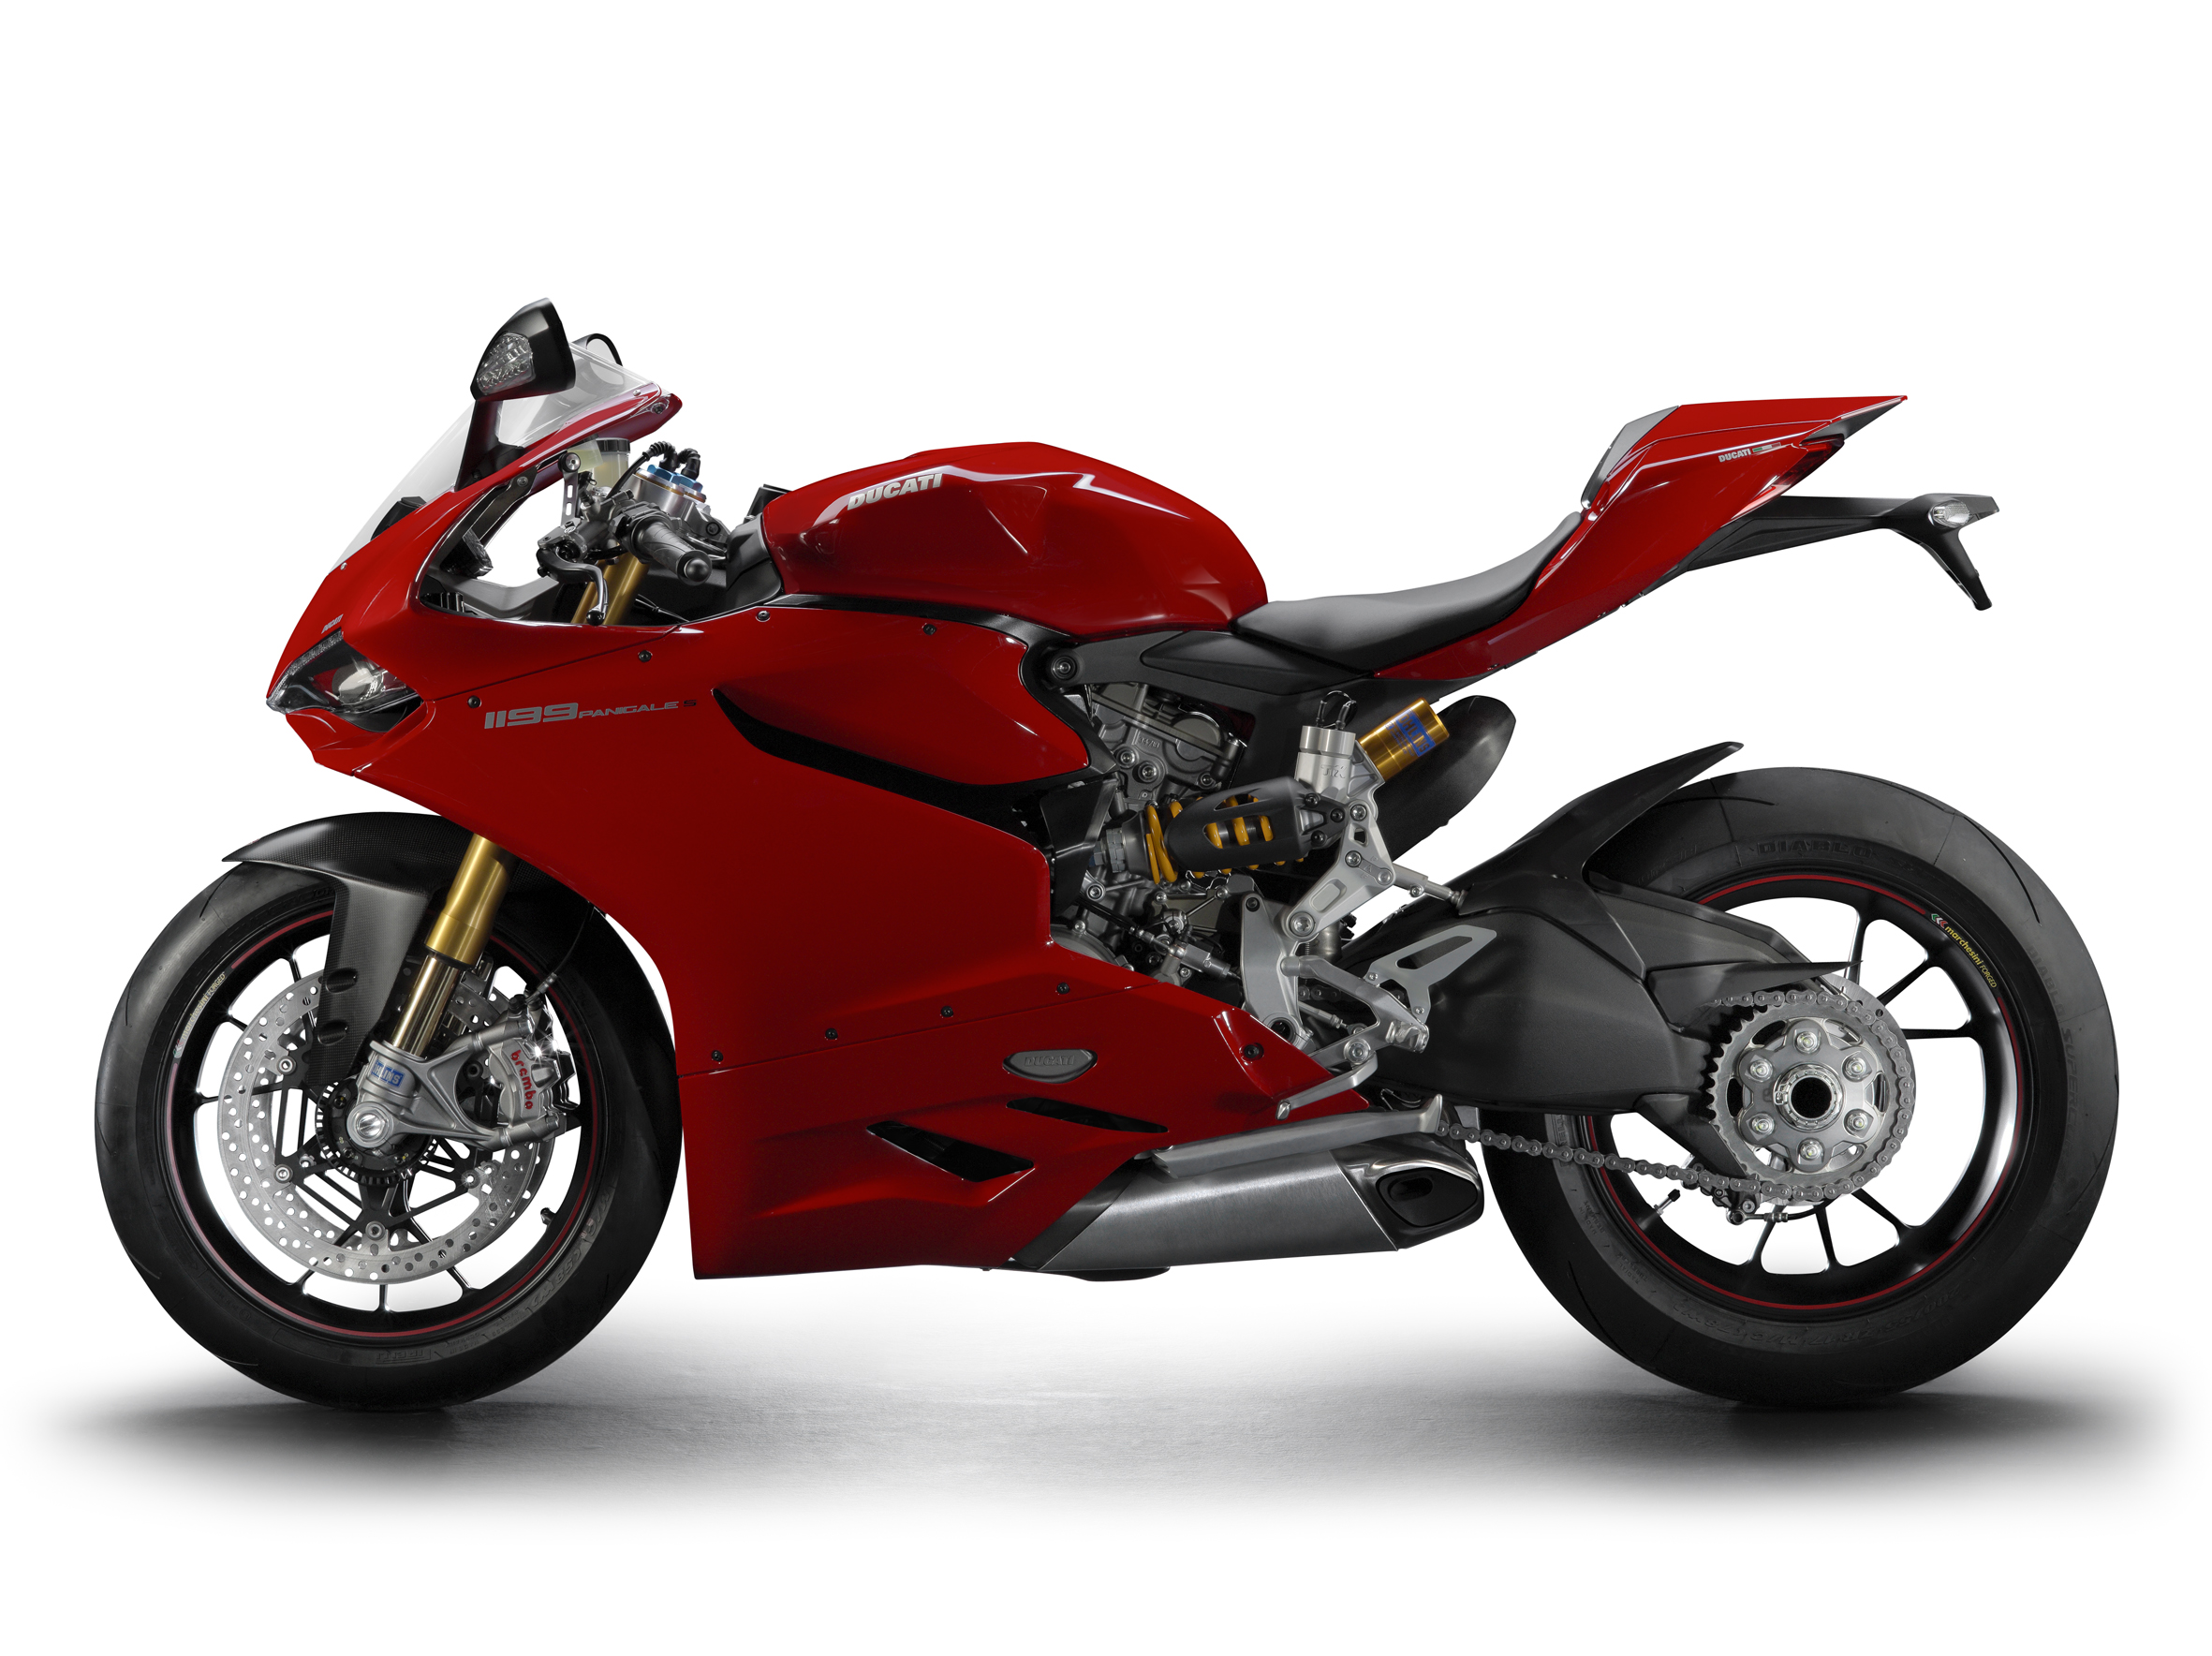 03 1199 Panigale S